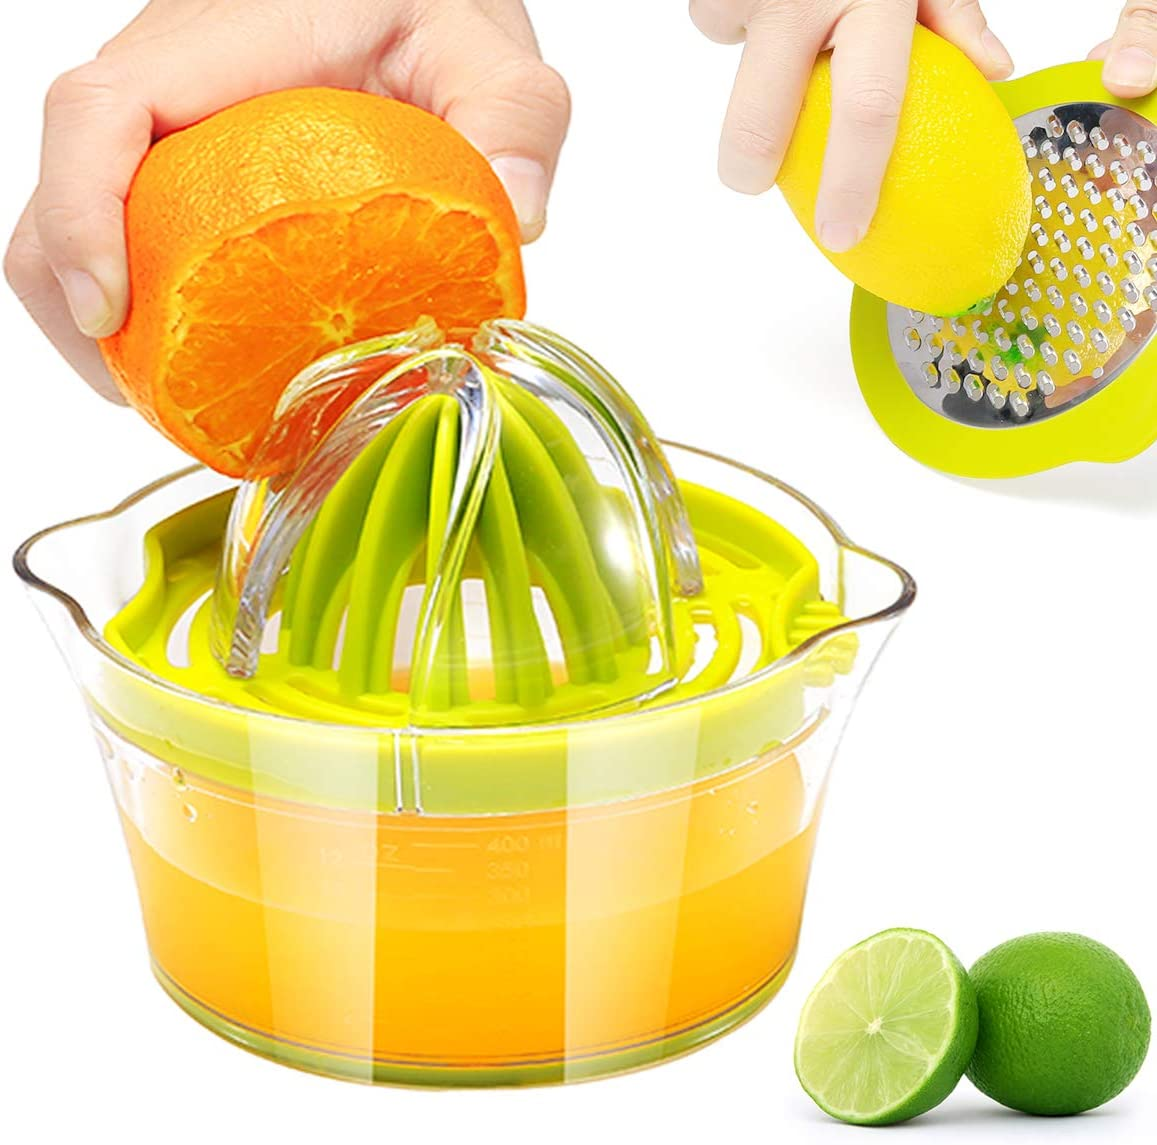 RIVTUN Lemon Orange Manual Juicer with Built-in Measuring Cup and Grater Anti-Slip Reamer Extraction Egg Separator,12OZ, Green